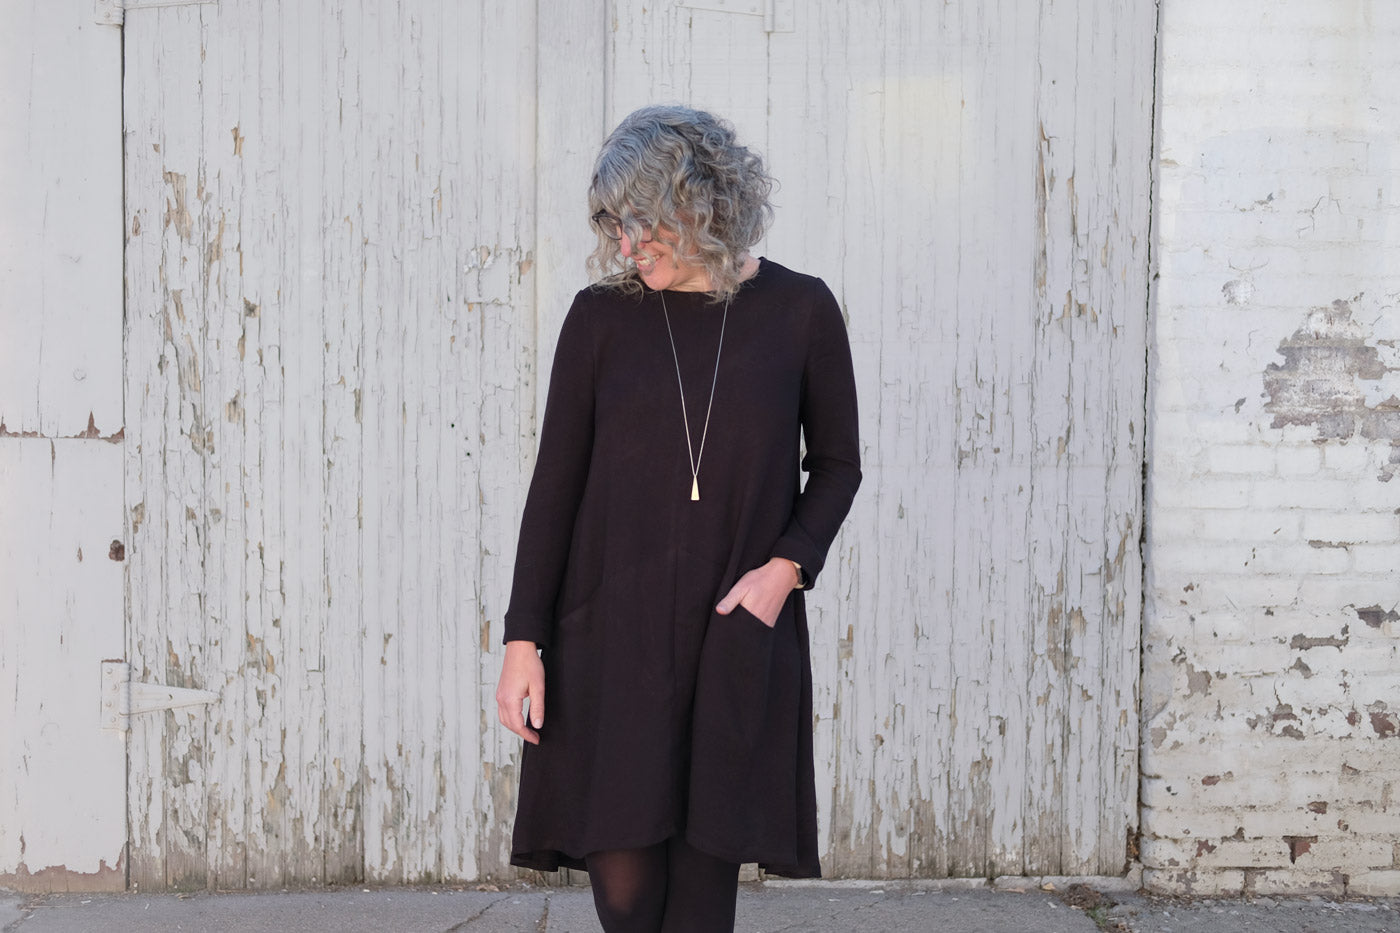 Jaime wearing her black Grainline Studio Farrow Dress and looking at the ground